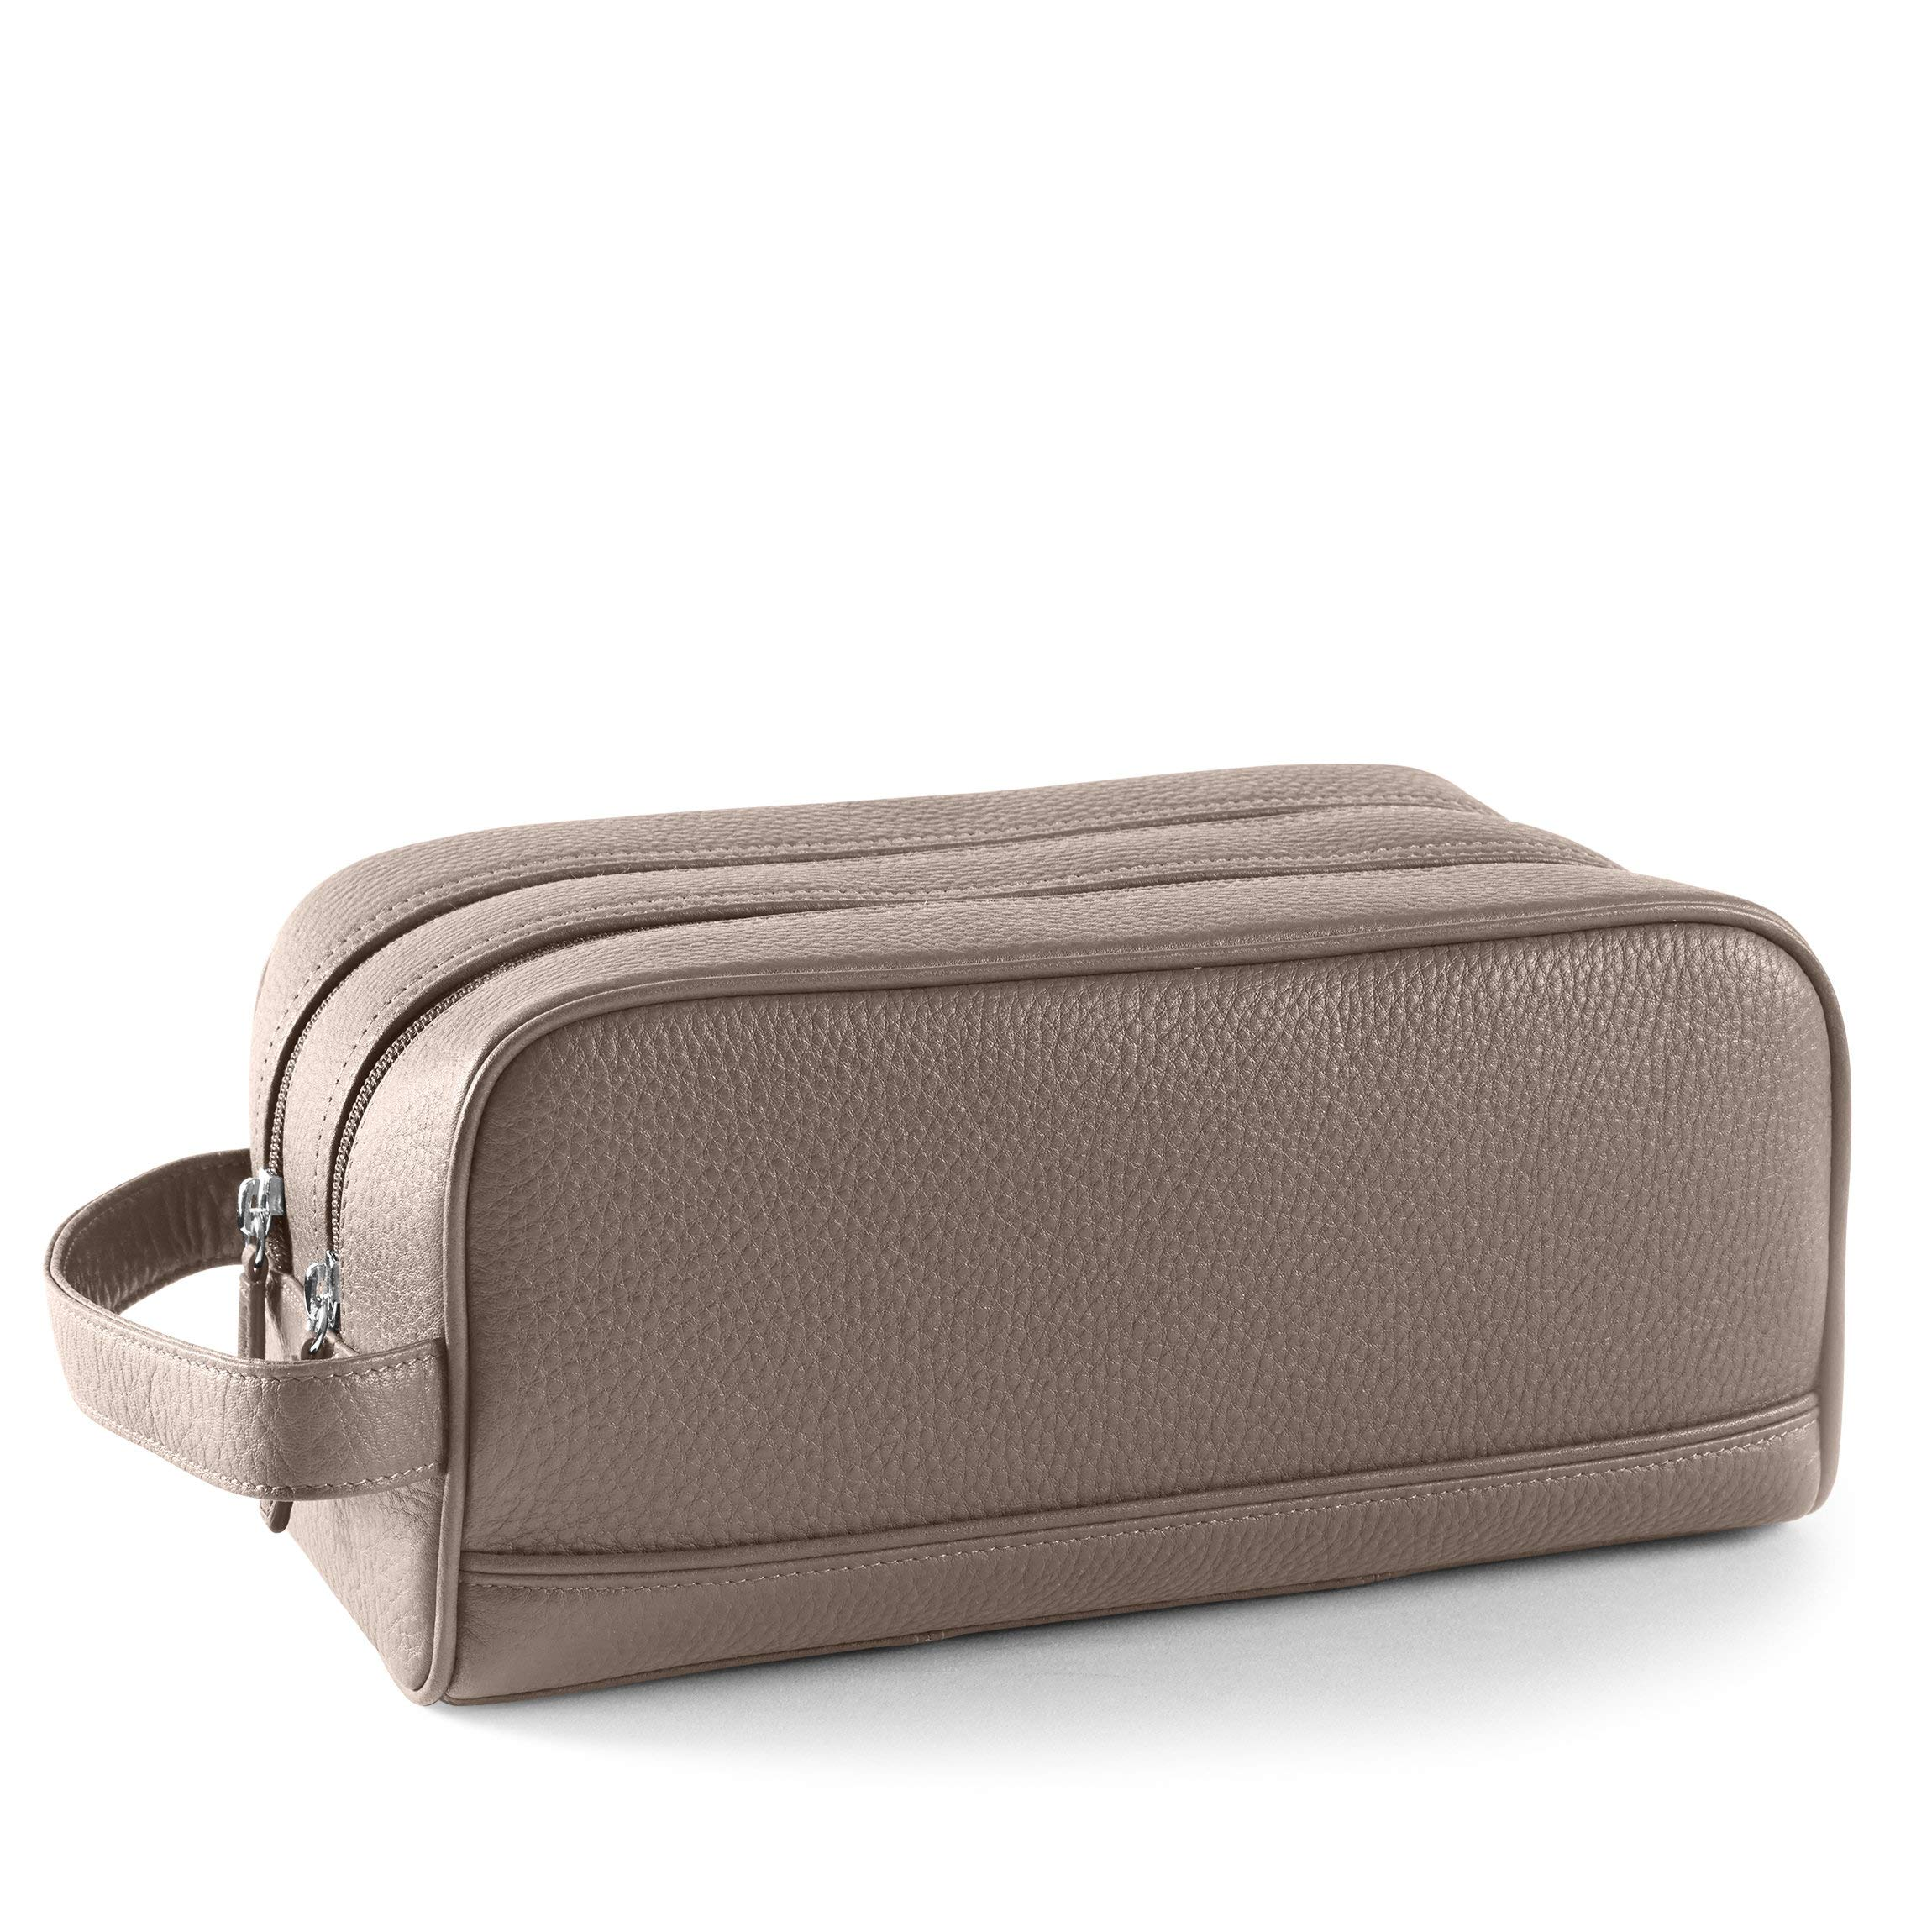 Leatherology Taupe Double Zip Toiletry Bag by Leatherology